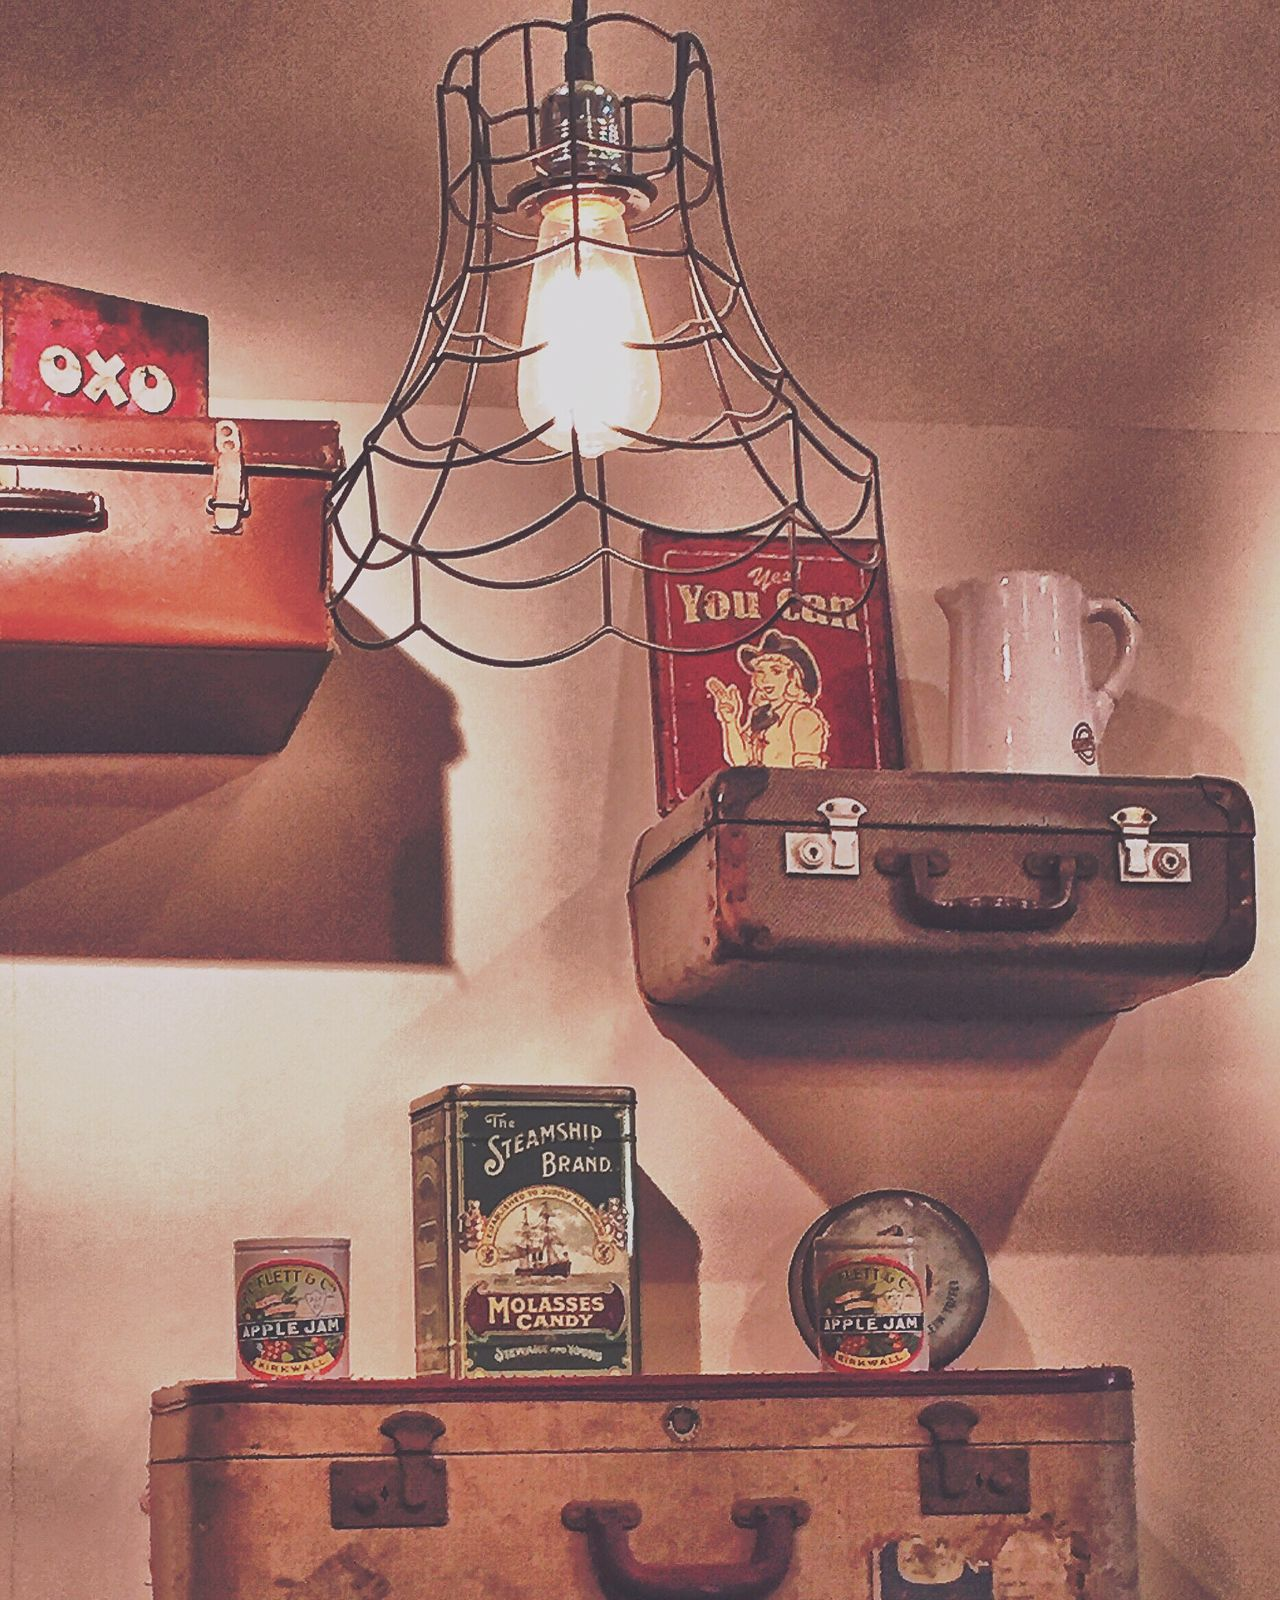 1940 1940s Cafe Suitcases Lampshade Oxo Shelves